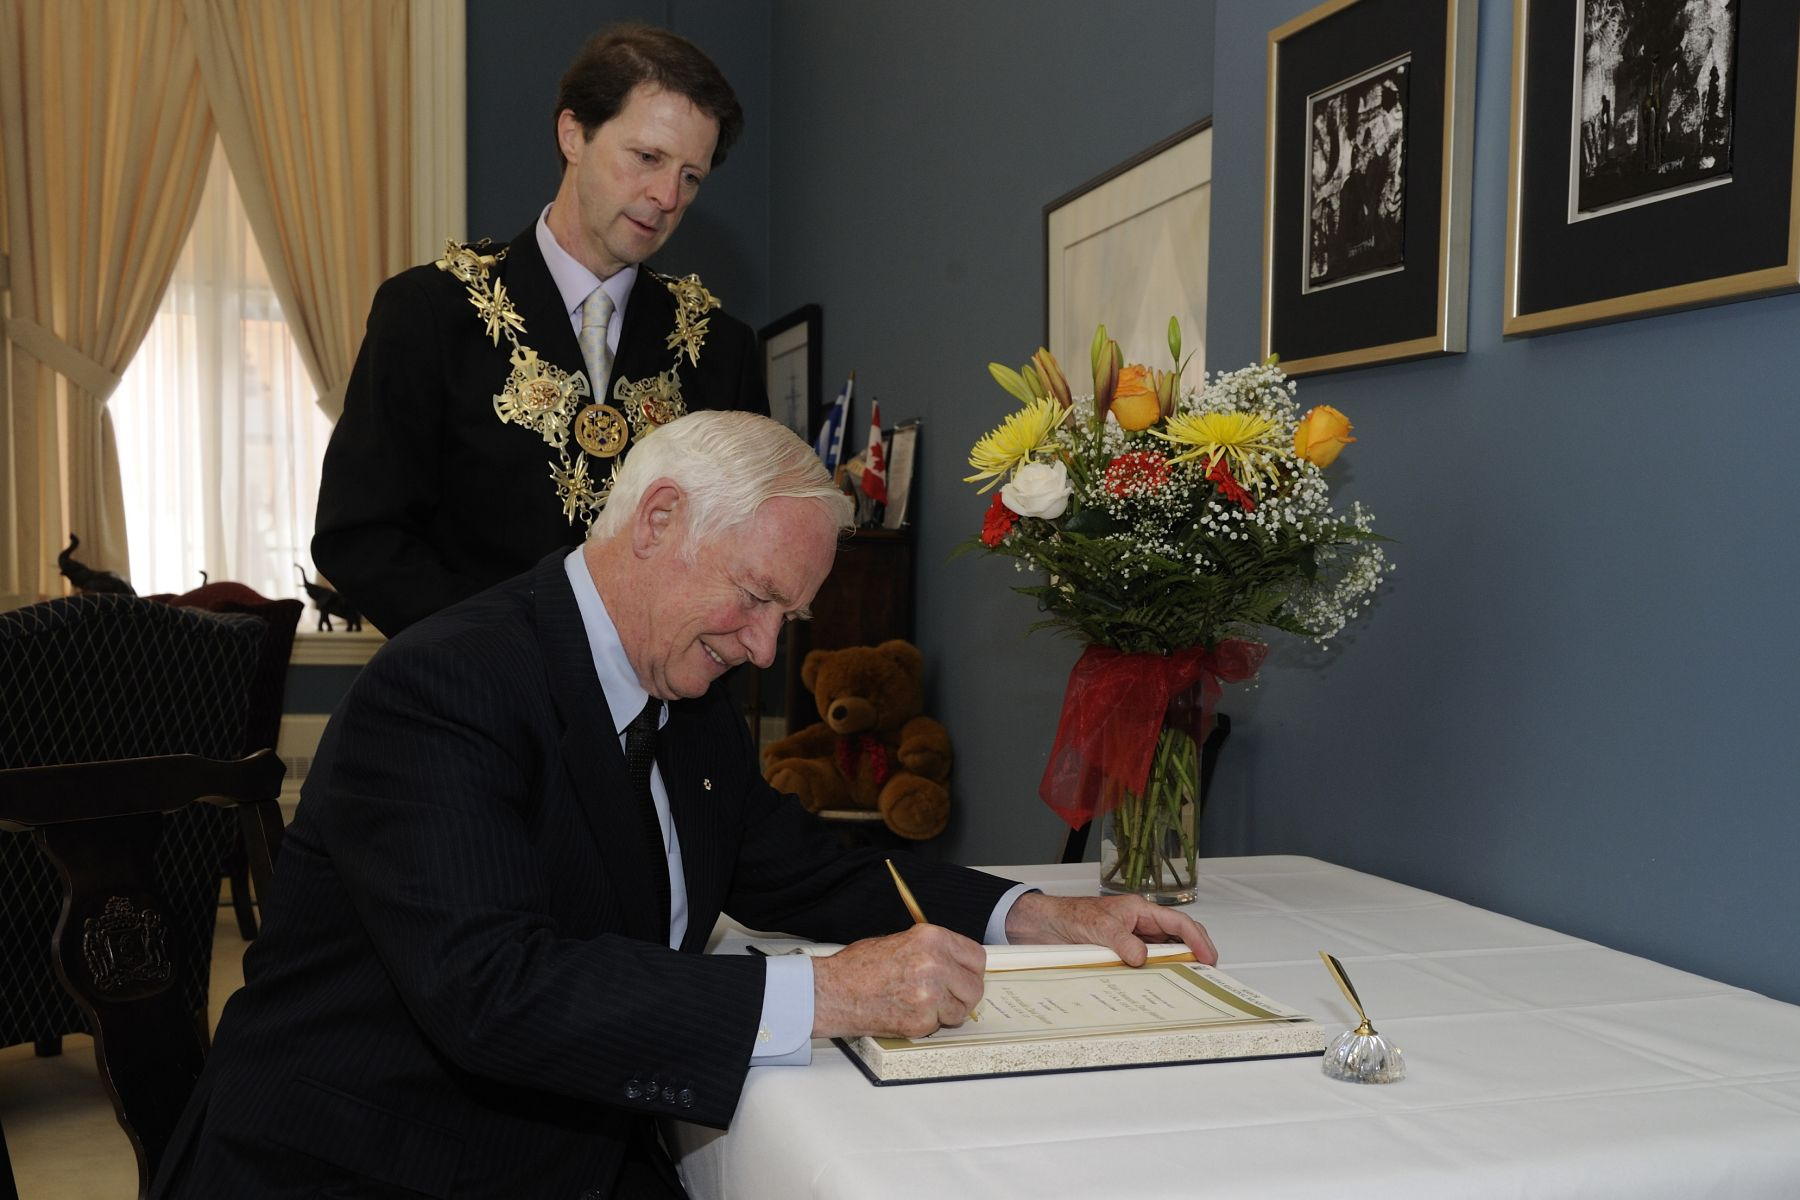 Prior to his meeting with the Mayor of Halifax, the Governor General signed the guest book.